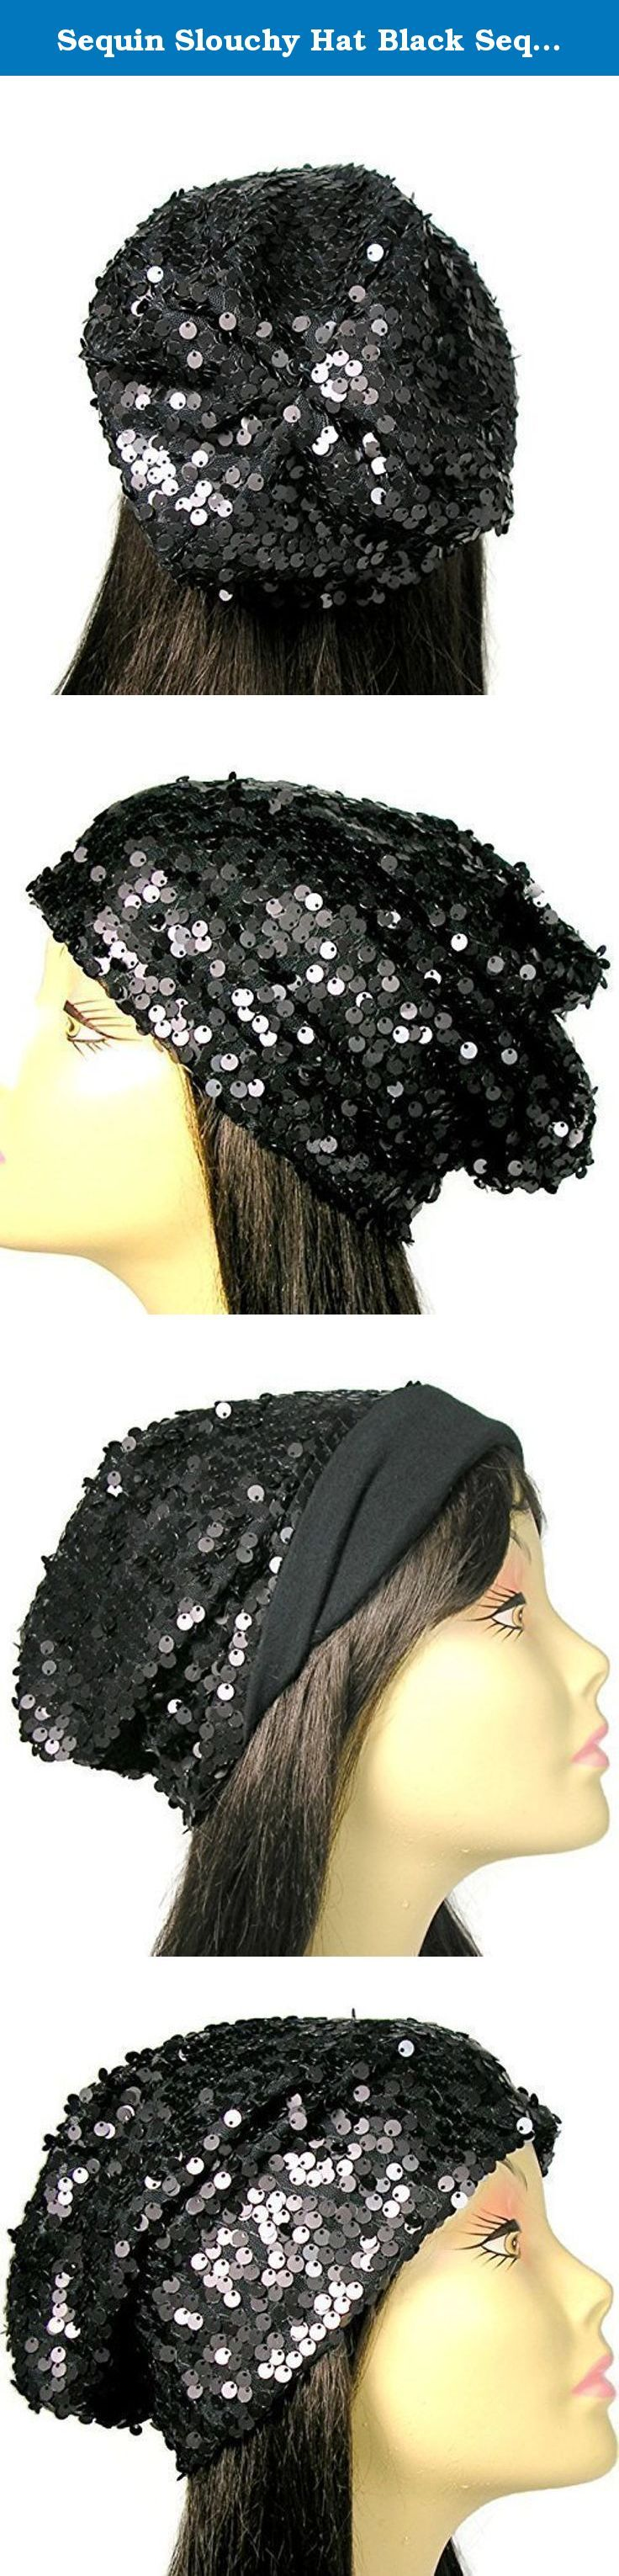 "Sequin Slouchy Hat Black Sequin Slouchy Beanie Glam Hats for Hair Loss Chemo Caps Womens Slouchy Beanies Lined Sequin Beanies. Black sequin slouchy beanie is fully-lined in 100% black cotton jersey. Comfortable for people suffering hair loss due to chemotherapy or alopecia No raw edges or exposed seams Approximate Measurements: stretches to 24"" circumference X 9-10"" high Glitzy gift for a person suffering hair loss. Make them feel glamorous again. Not sure of what size? People who have…"